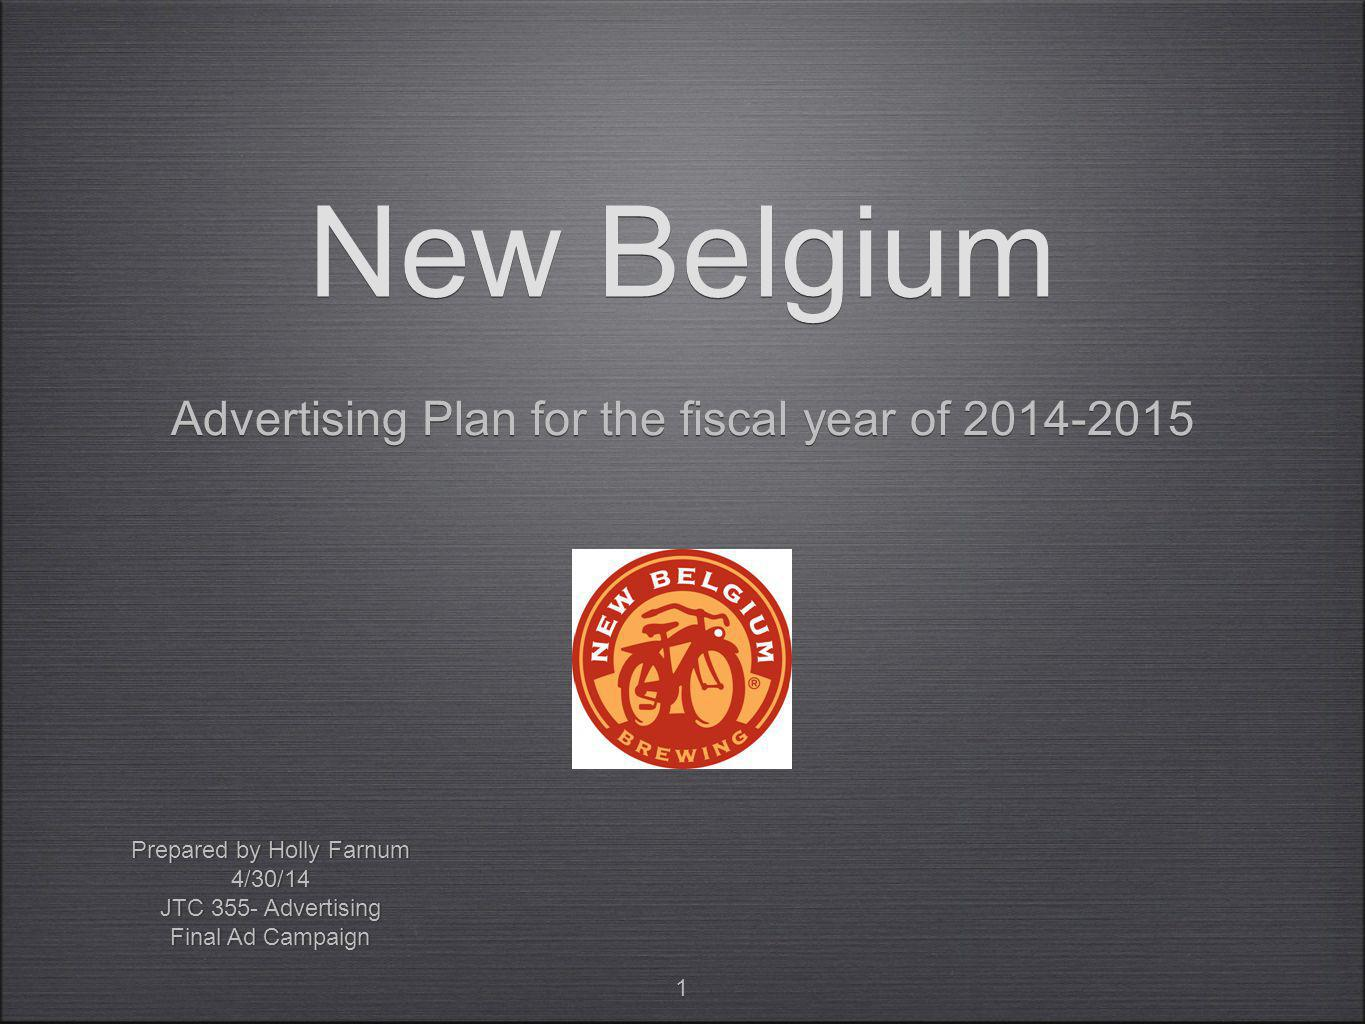 1 New Belgium Advertising Plan for the fiscal year of Prepared by Holly Farnum 4/30/14 JTC 355- Advertising Final Ad Campaign Prepared by Holly Farnum 4/30/14 JTC 355- Advertising Final Ad Campaign